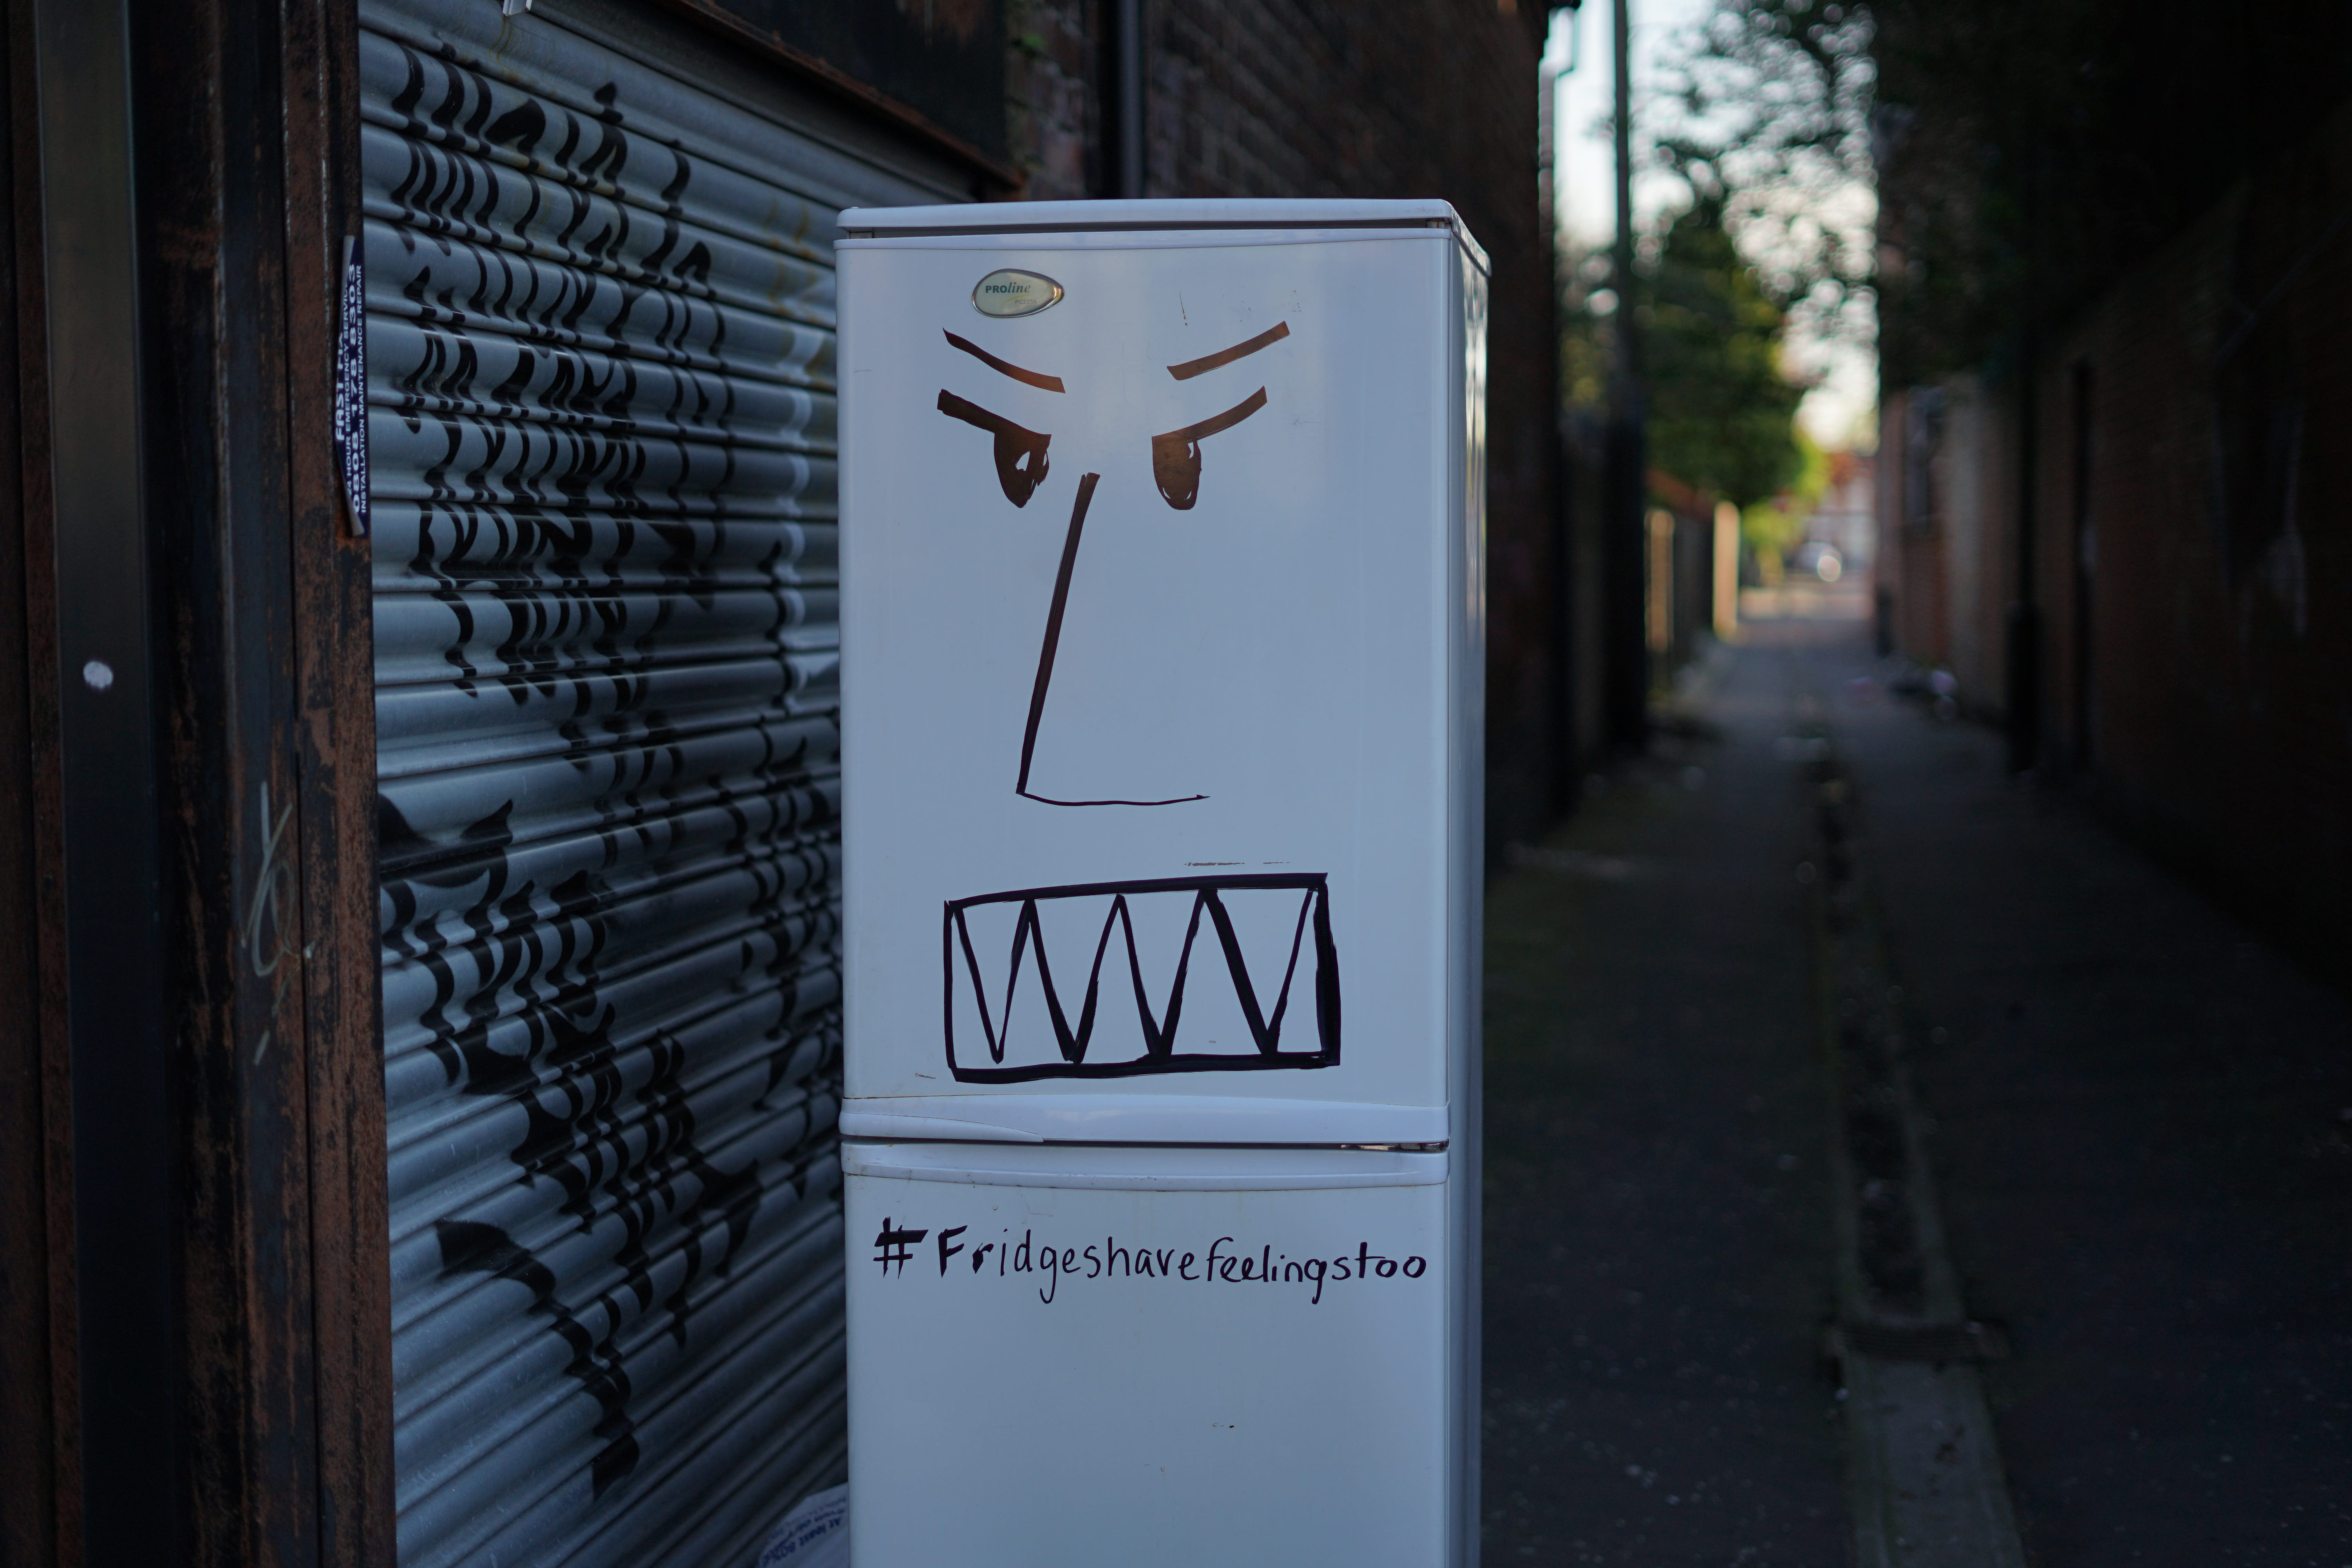 Angry face drawn on fridge